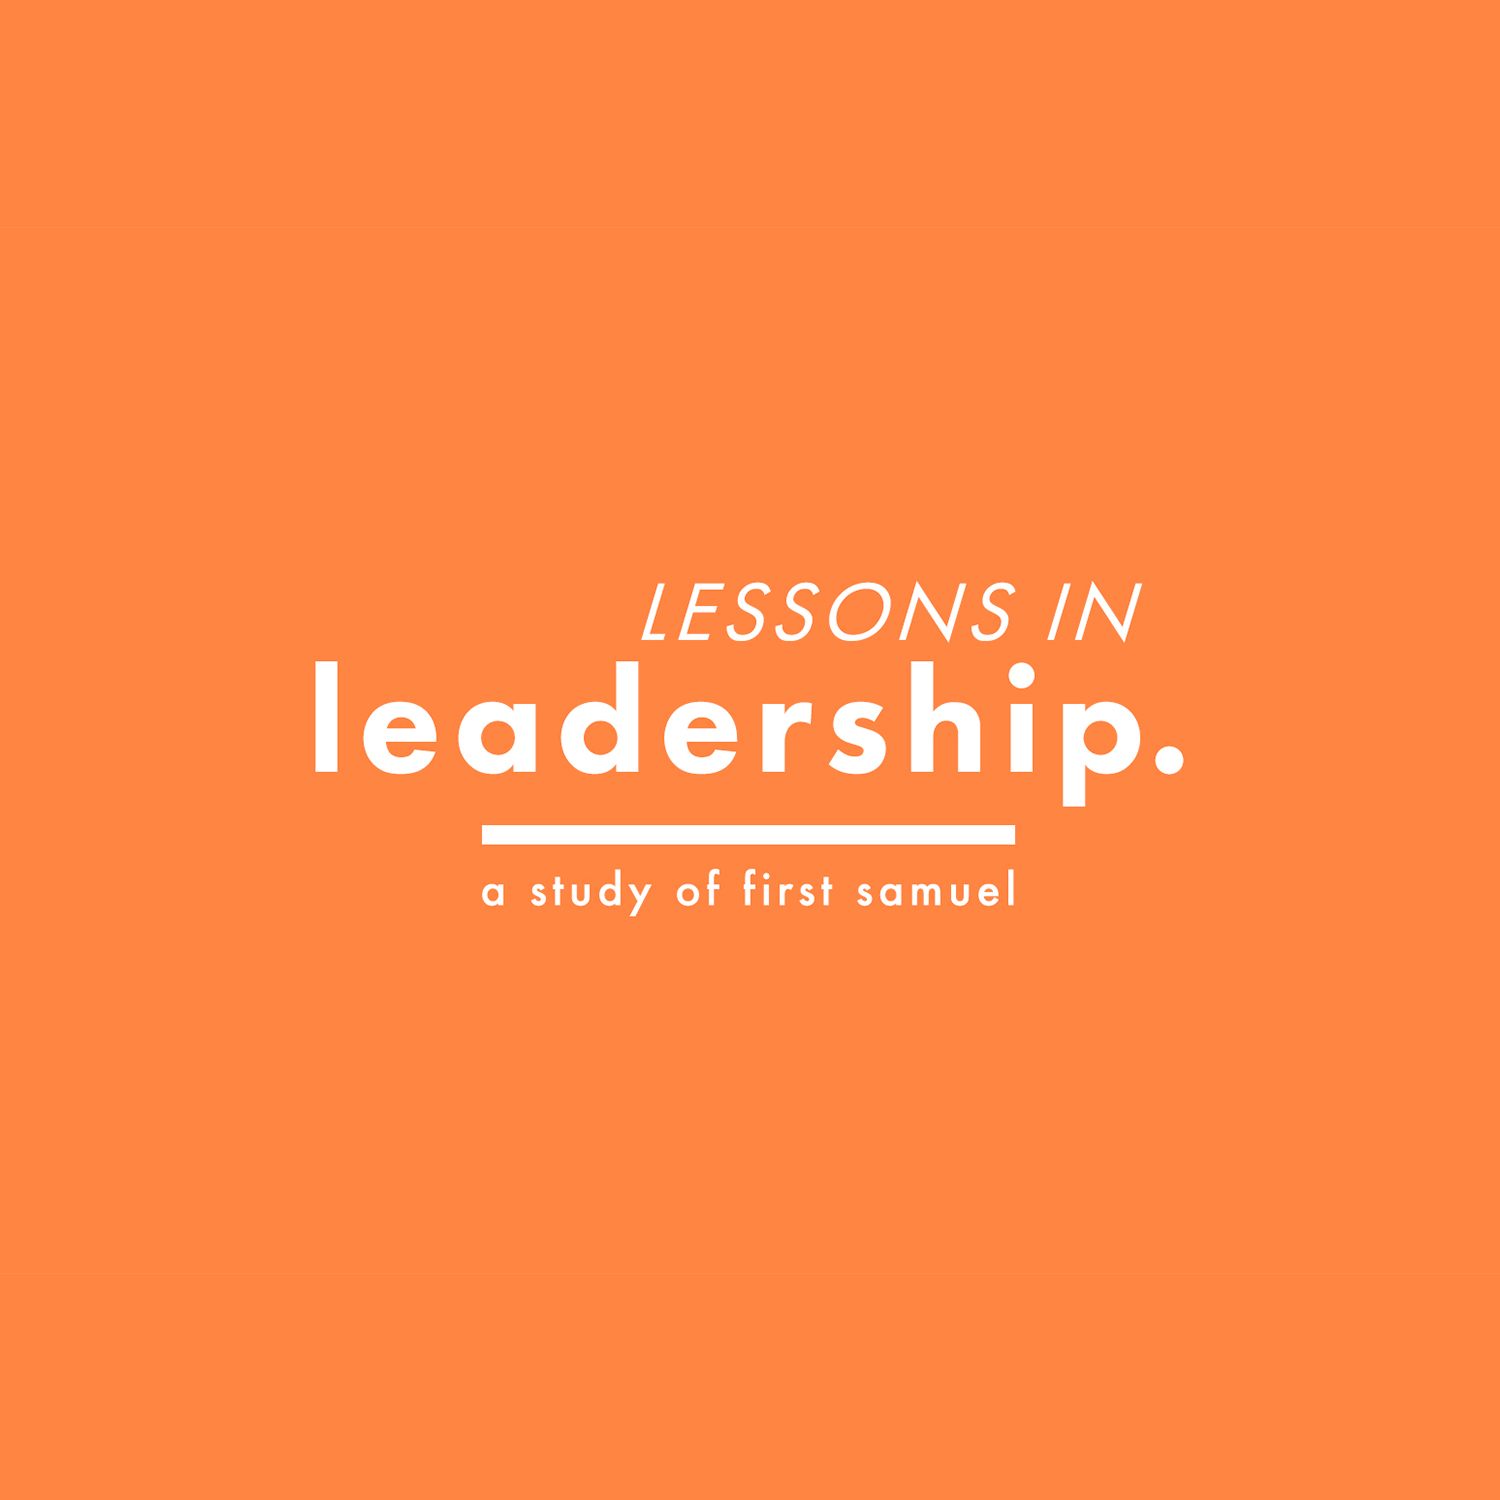 Lessons in Leadership | A Leader's Responsibility